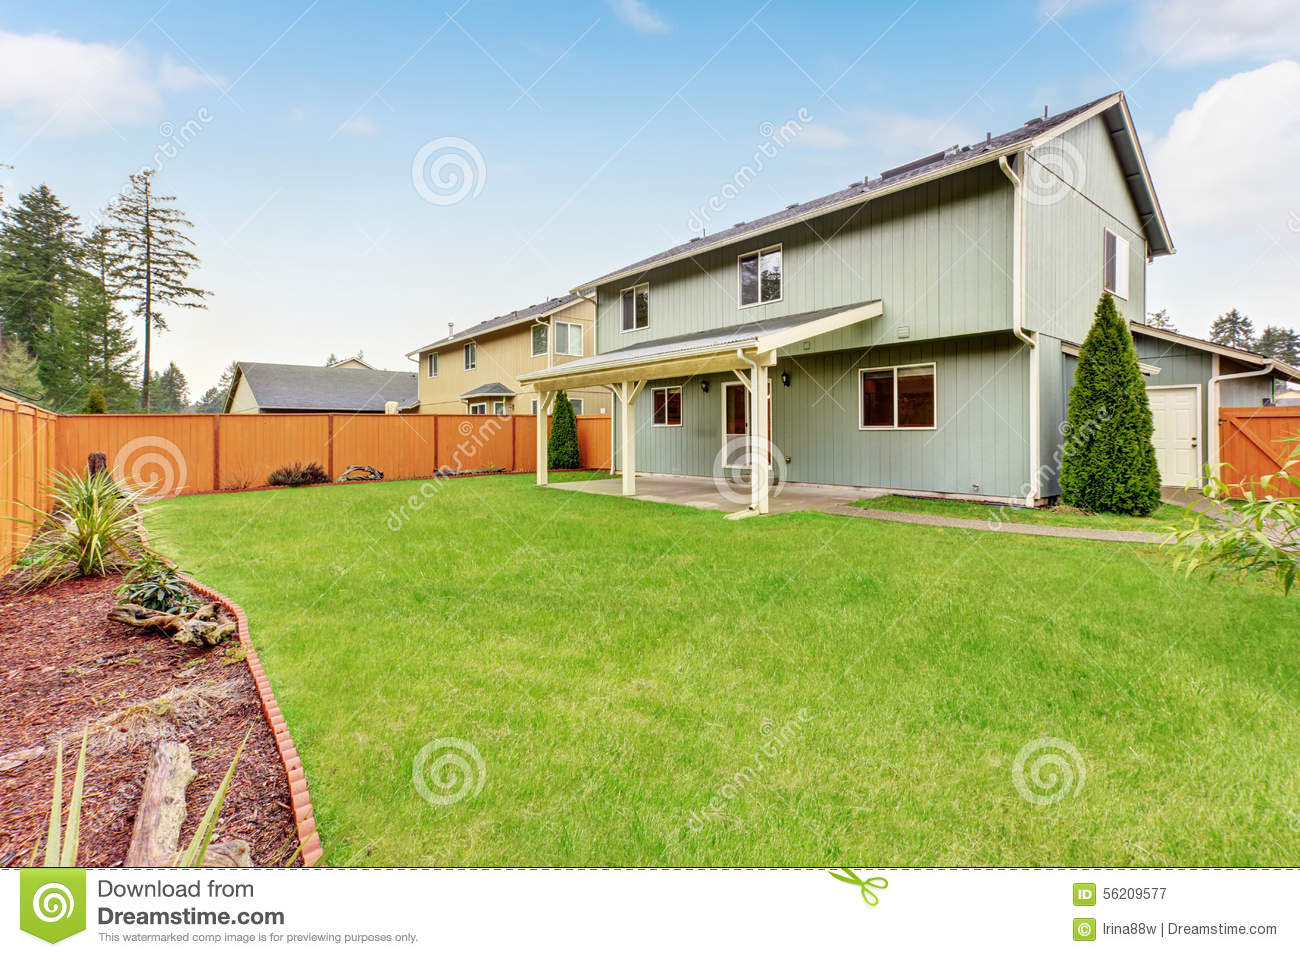 Nice Backyard Patios : More similar stock images of ` Nice backyard with covered patio `